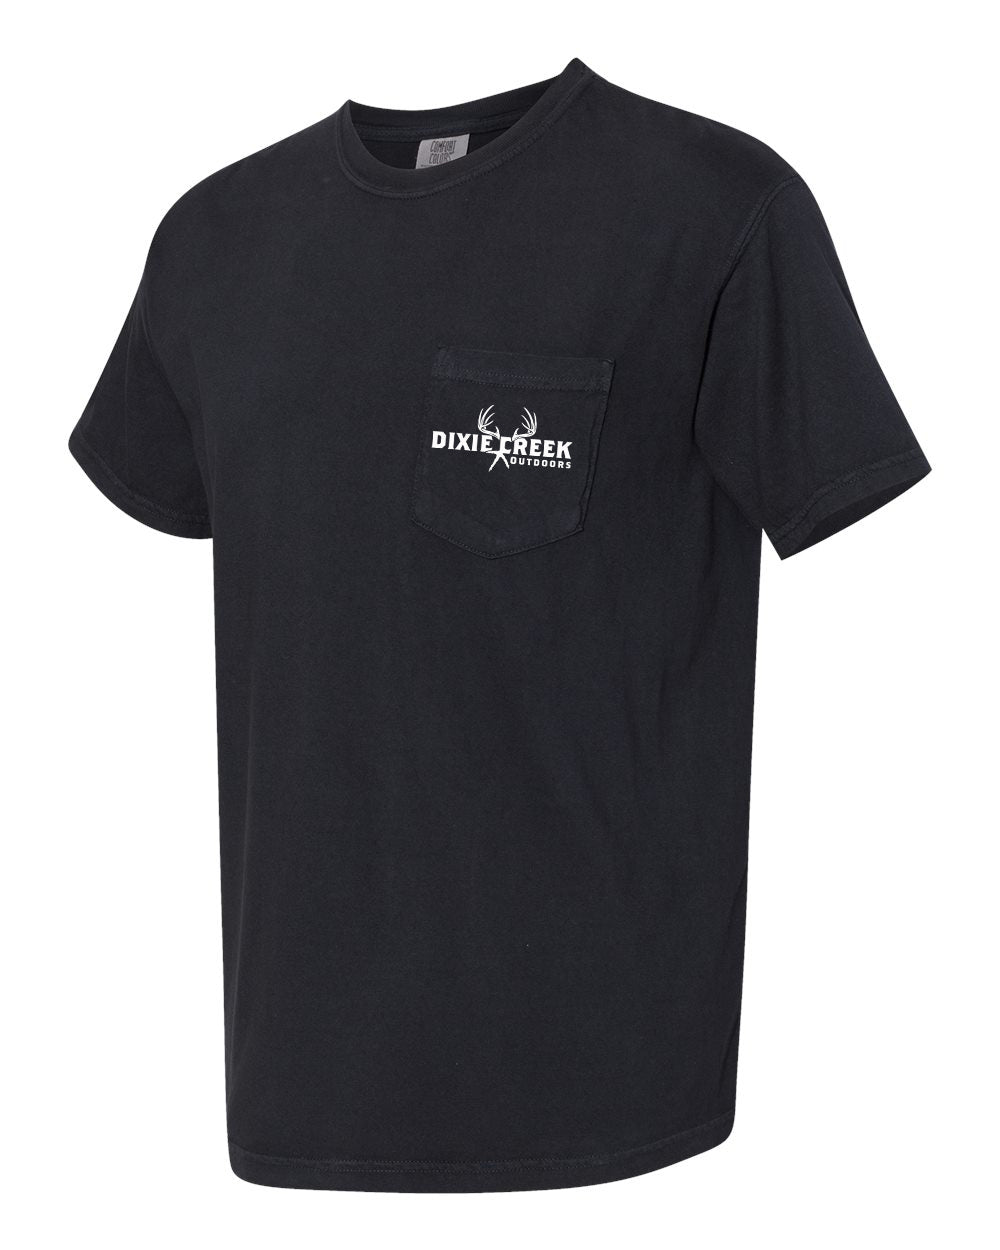 Morning Bugle - Comfort Colors Pocket Tee